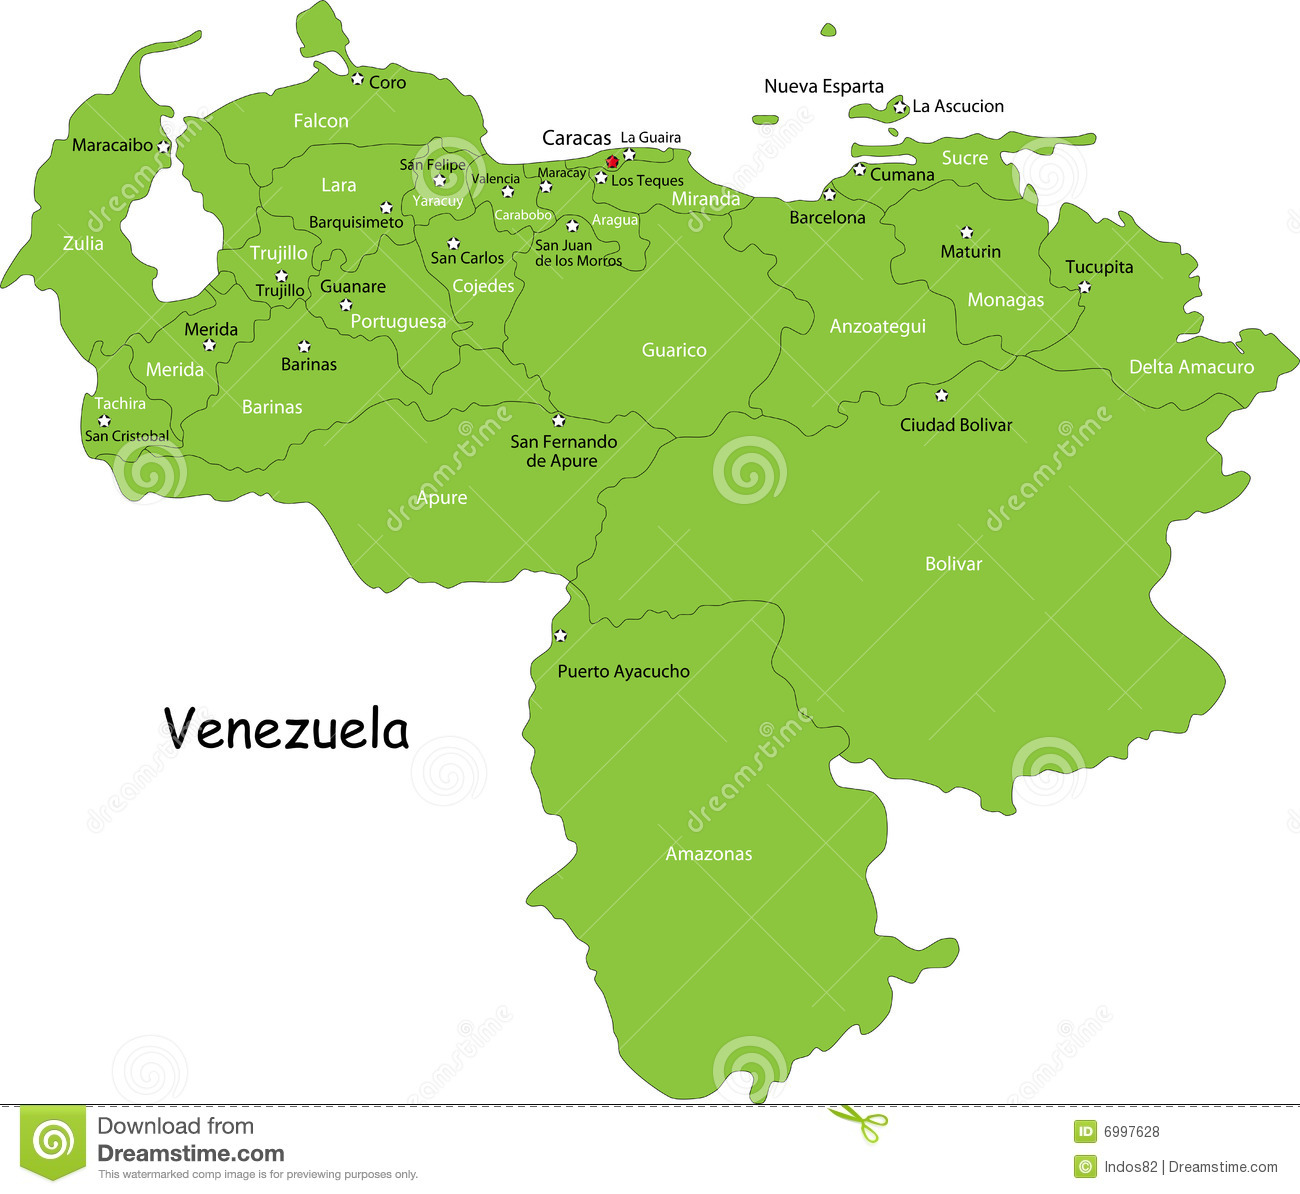 printable world map for kids with Royalty Free Stock Photos Map Venezuela Image6997628 on 8740497193 additionally Rail Map additionally River Map besides Ruler 12 Inch by 10 besides River Map.